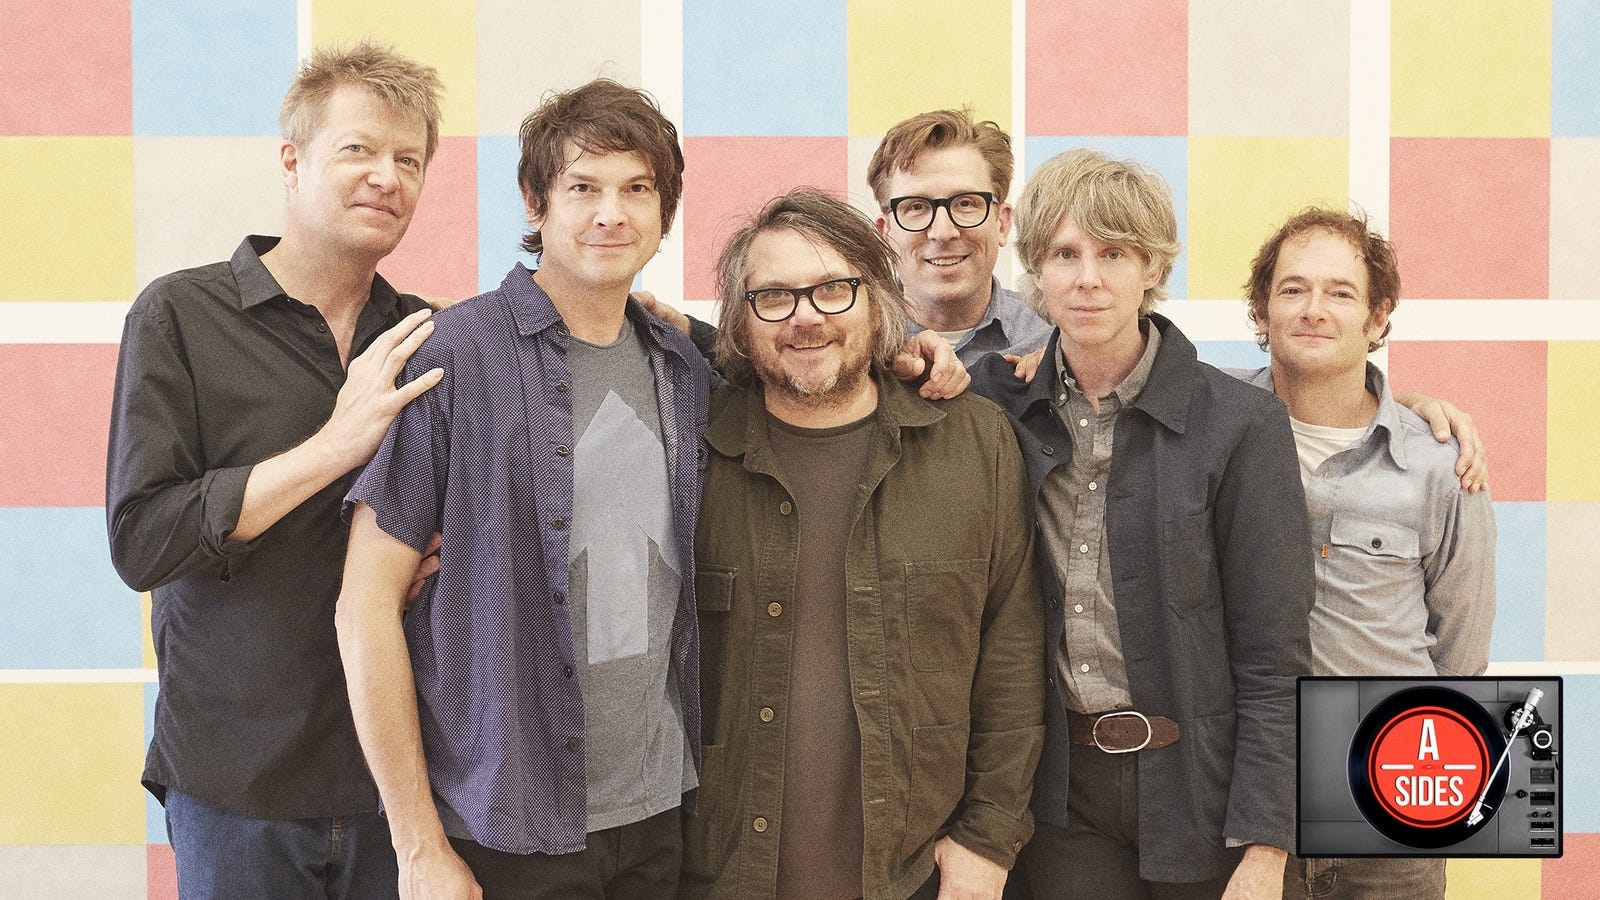 5 new releases we love: Wilco gets positive, Chromatics return, and more